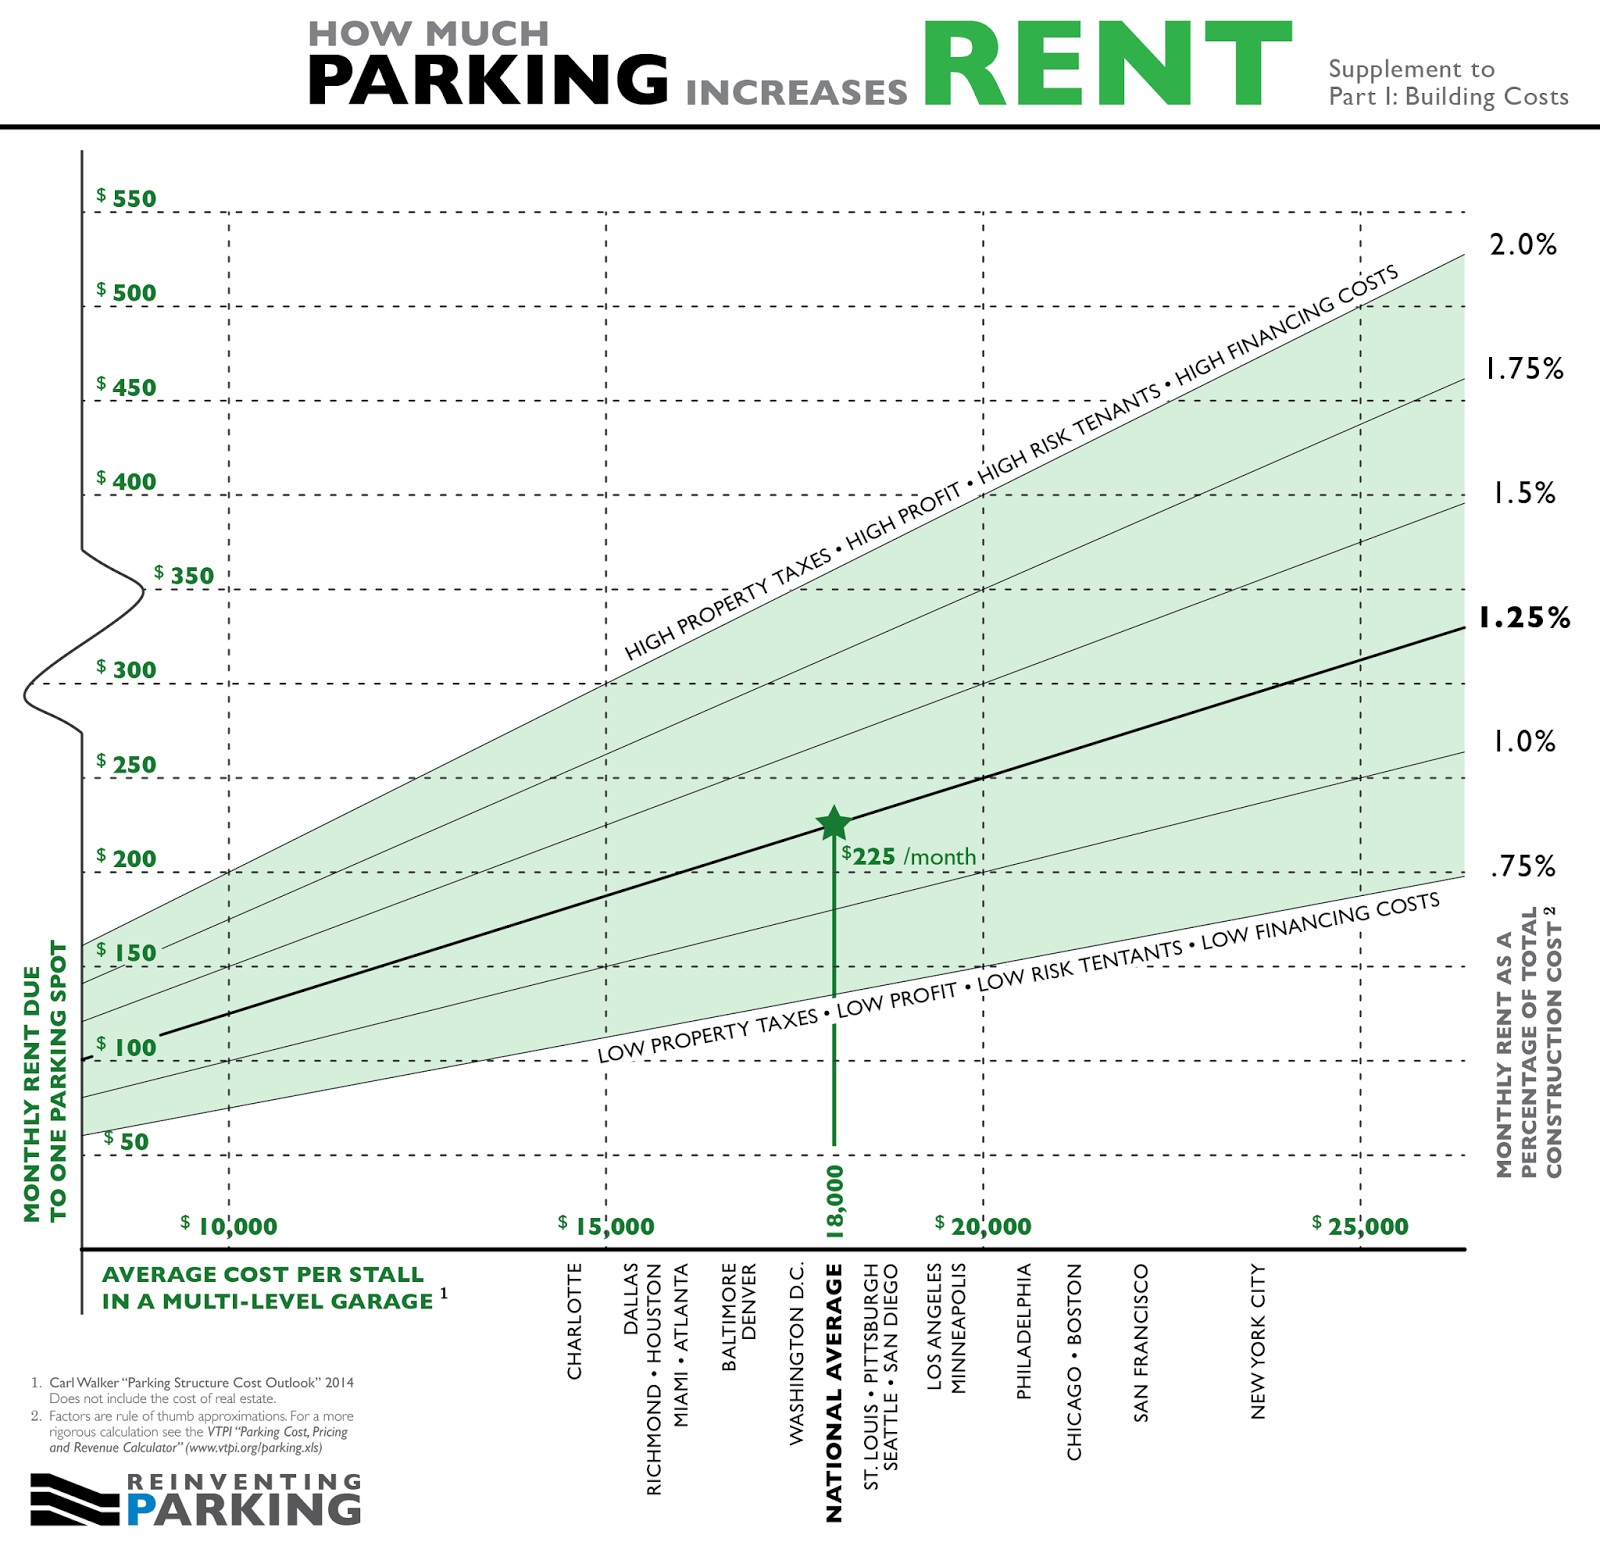 how much does one parking spot add to rent reinventing parking